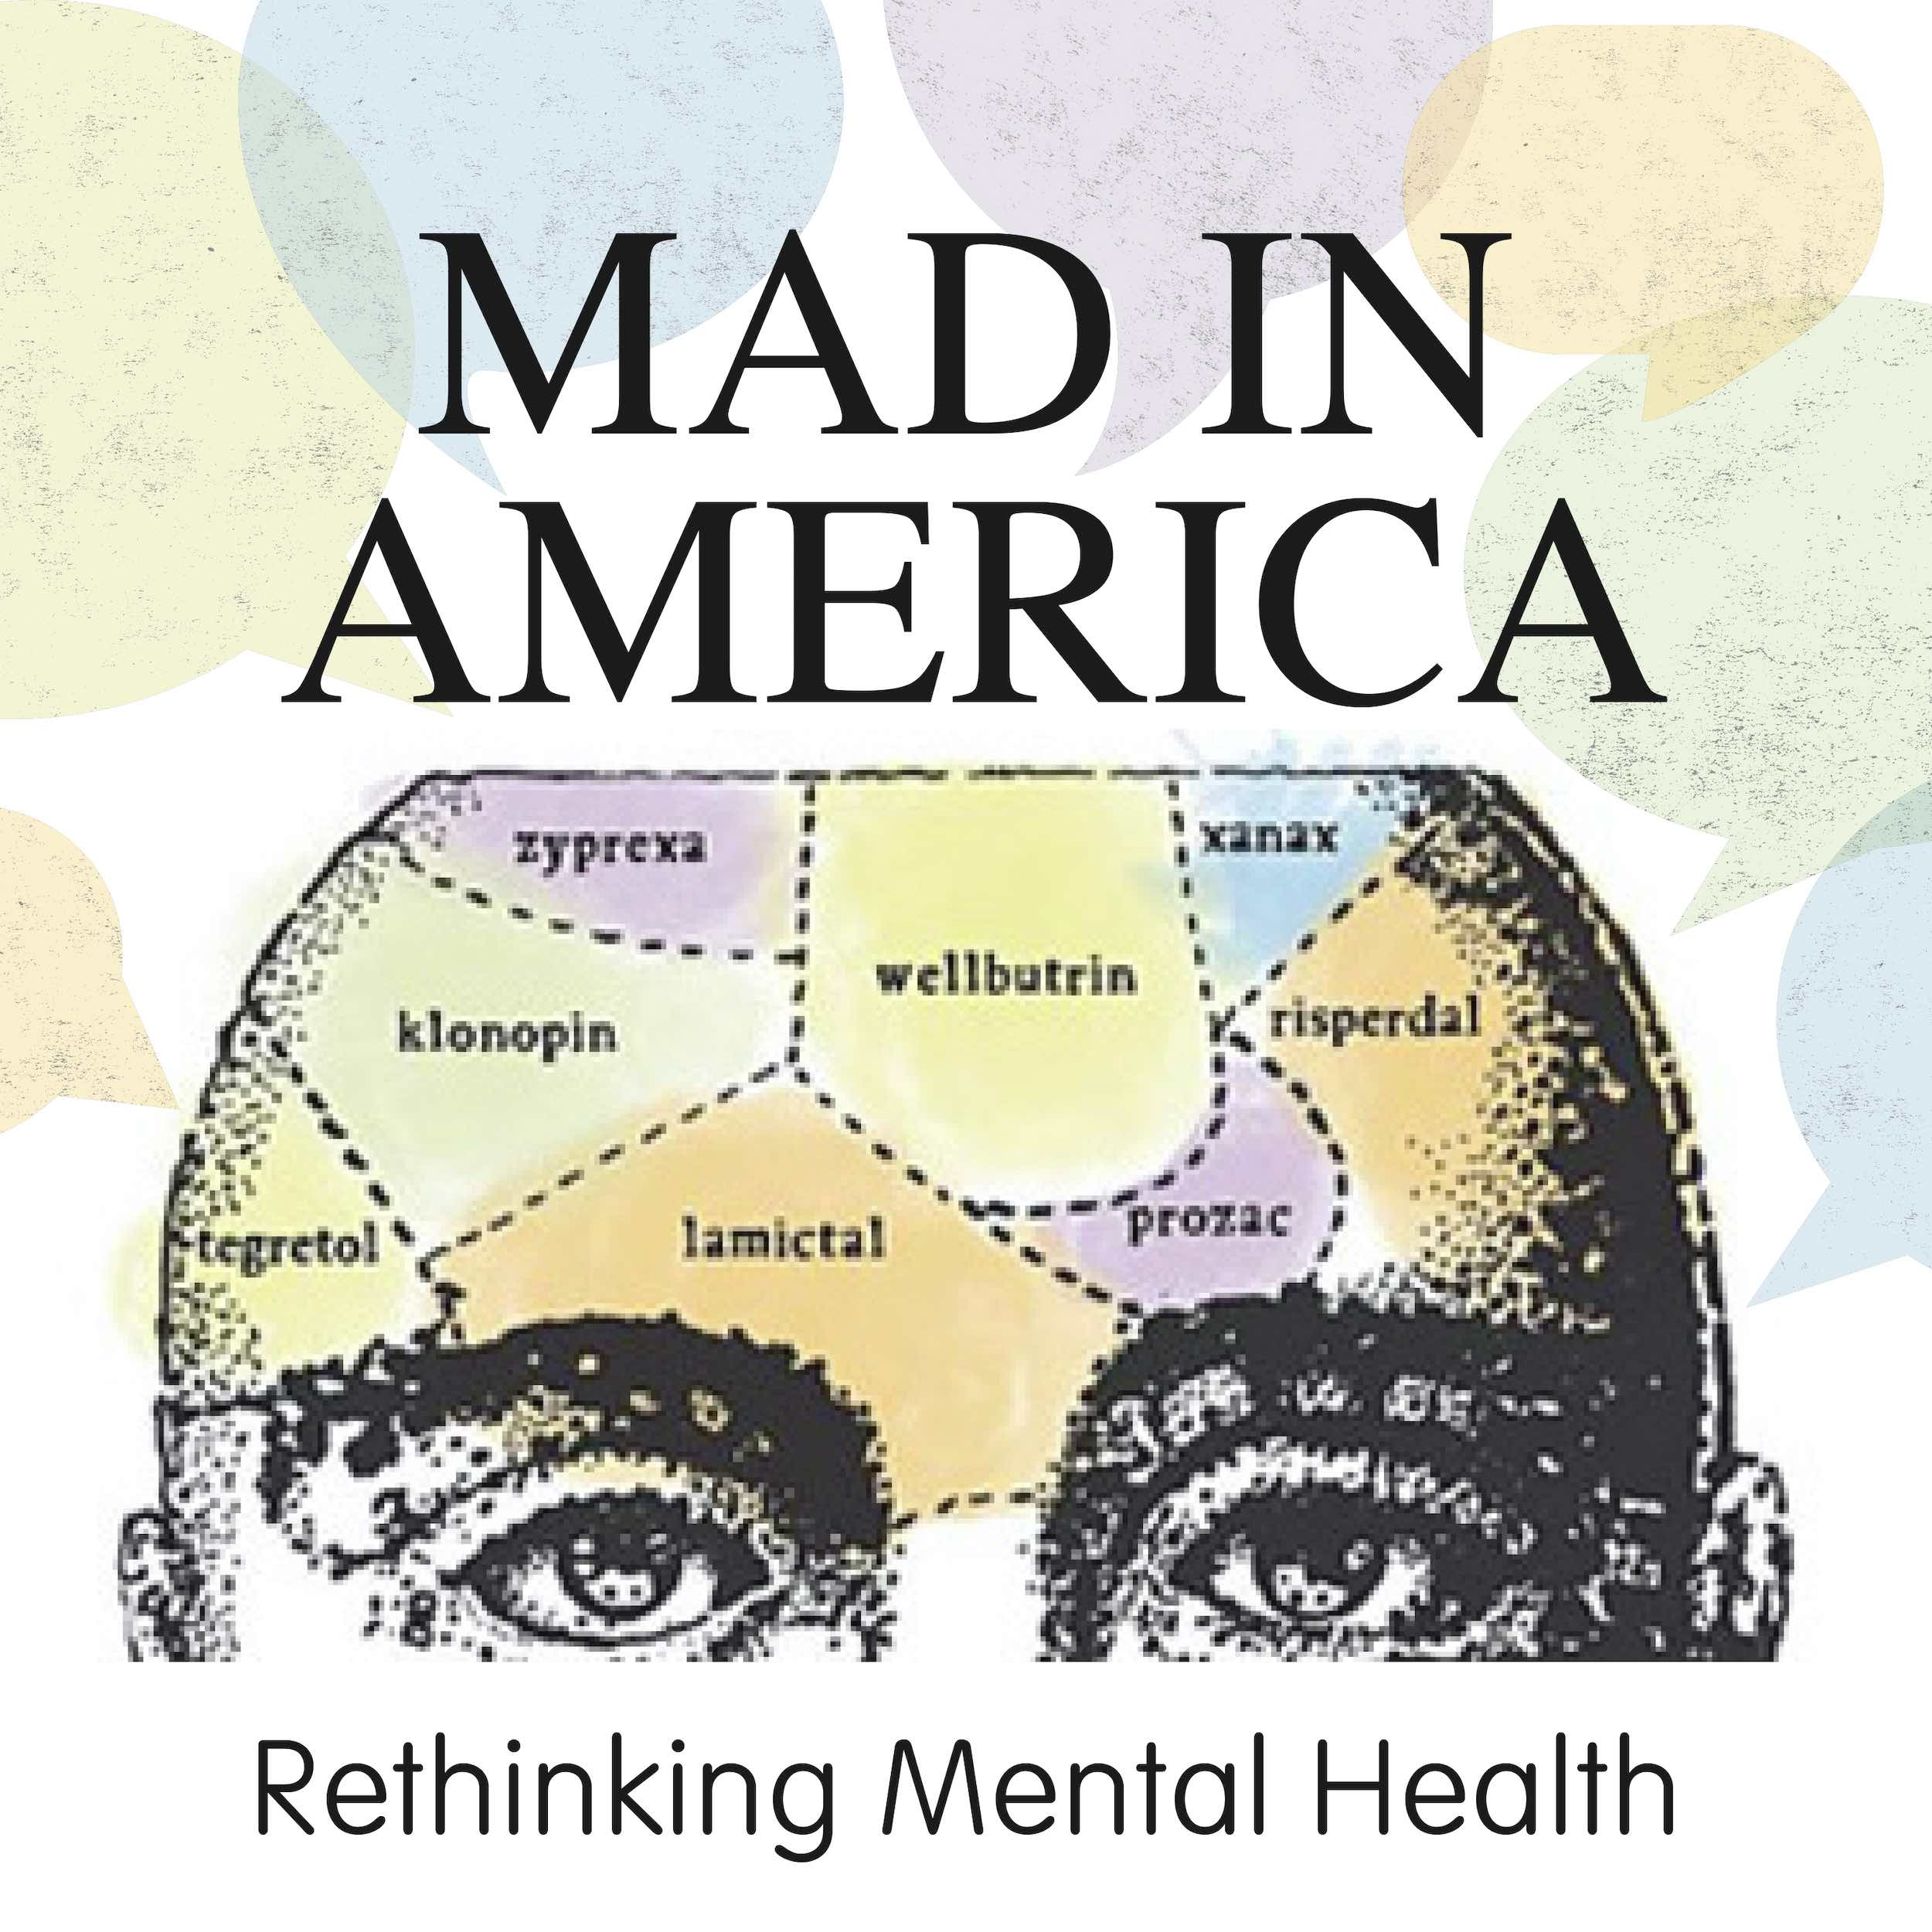 Mad in America: Rethinking Mental Health - Psychiatric Drug Withdrawal - Setting the Scene